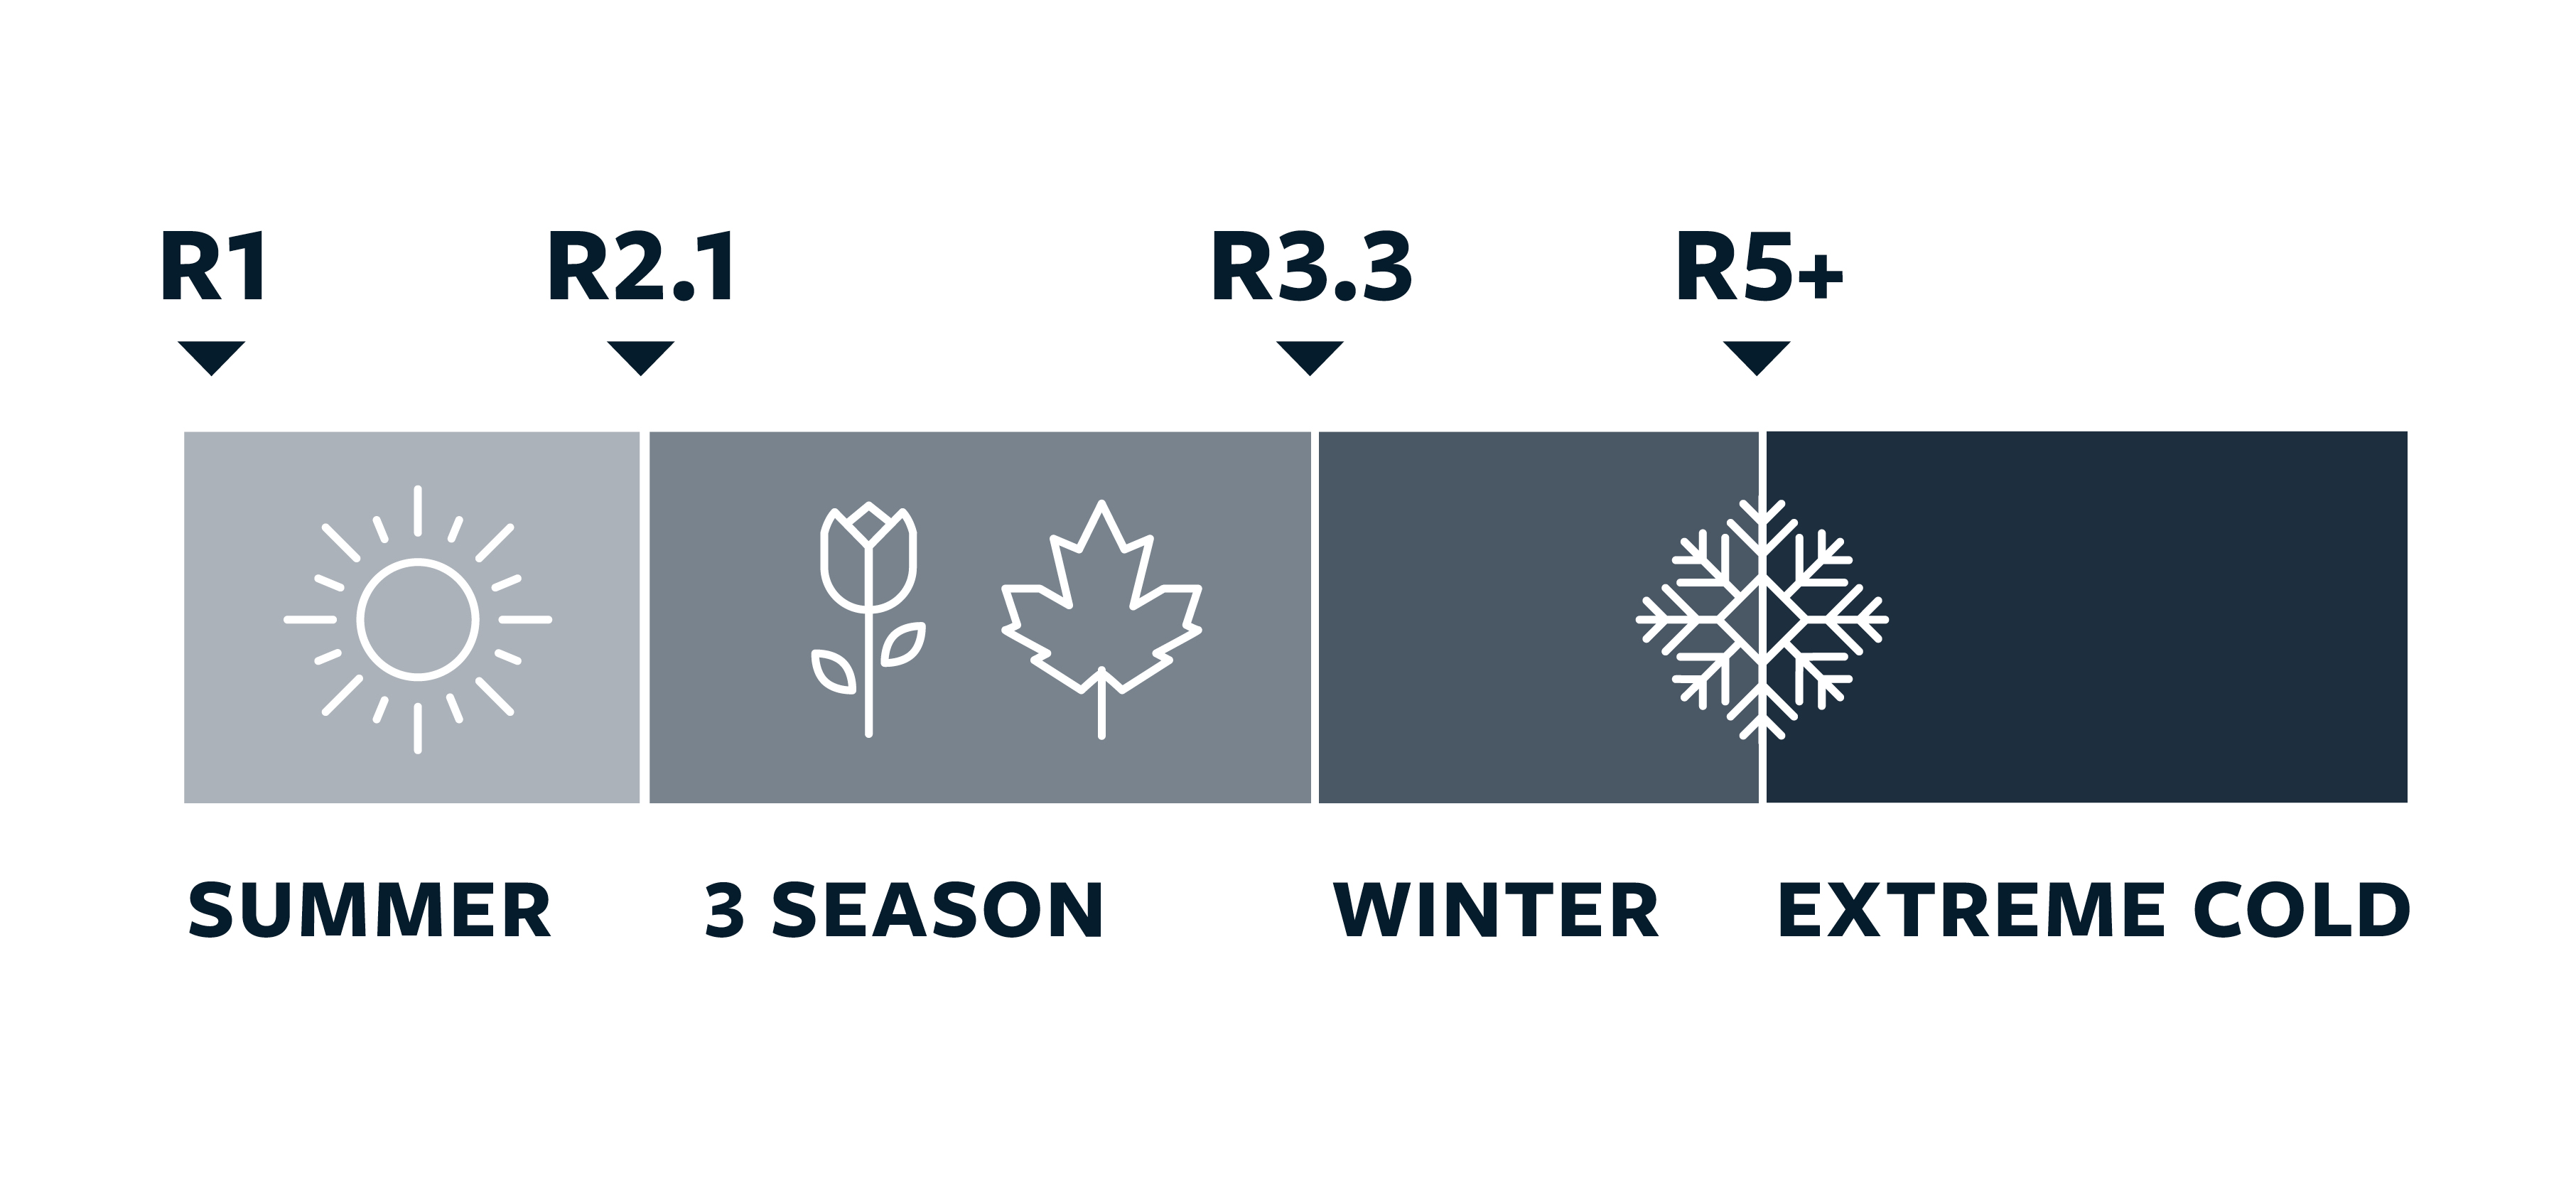 R-value rating for each season